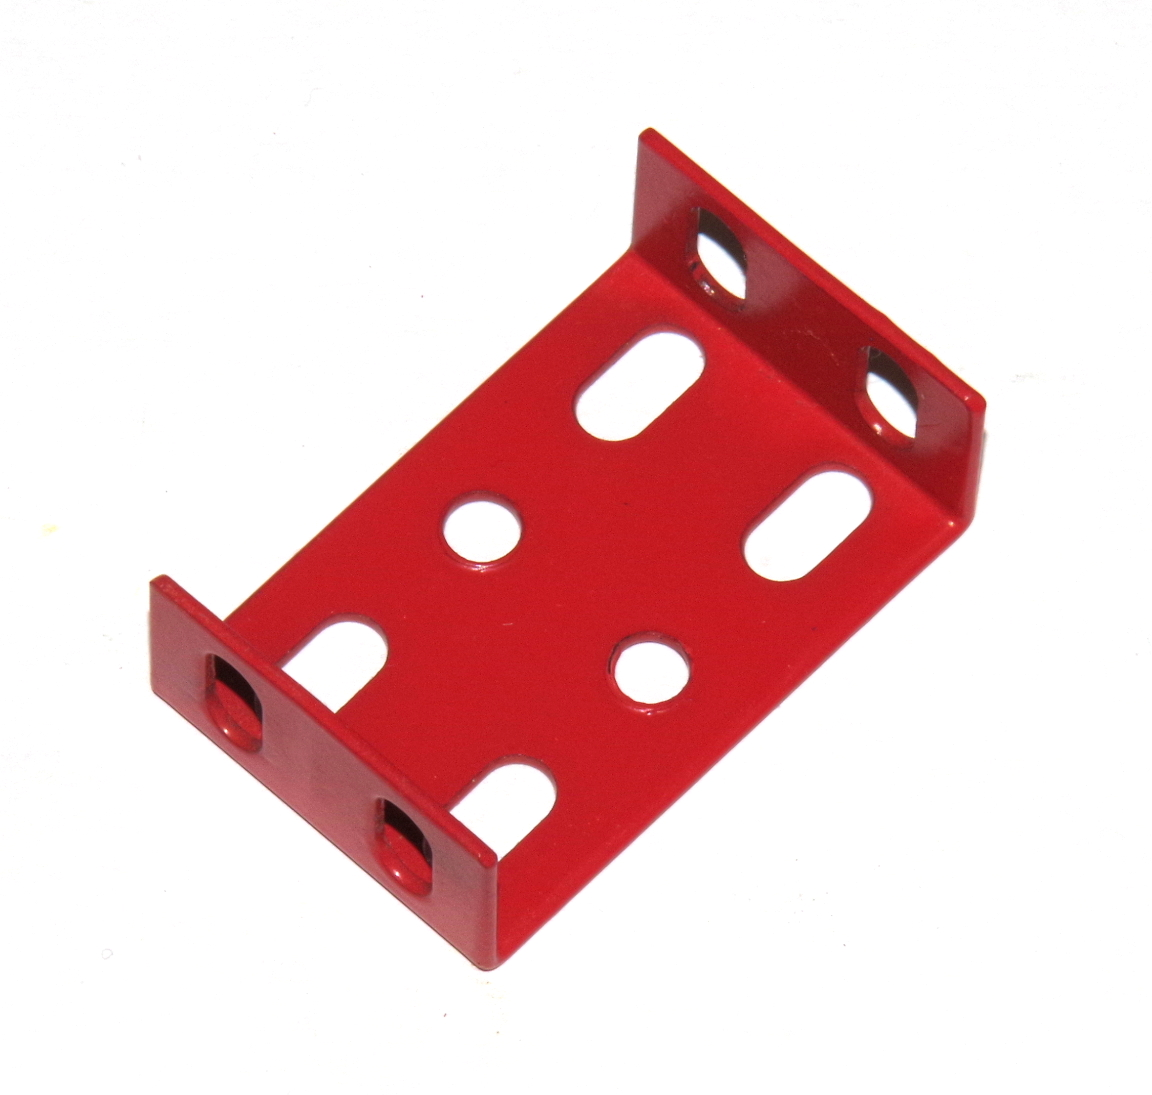 3103-02 Flanged Plate 3x2 Hole Red